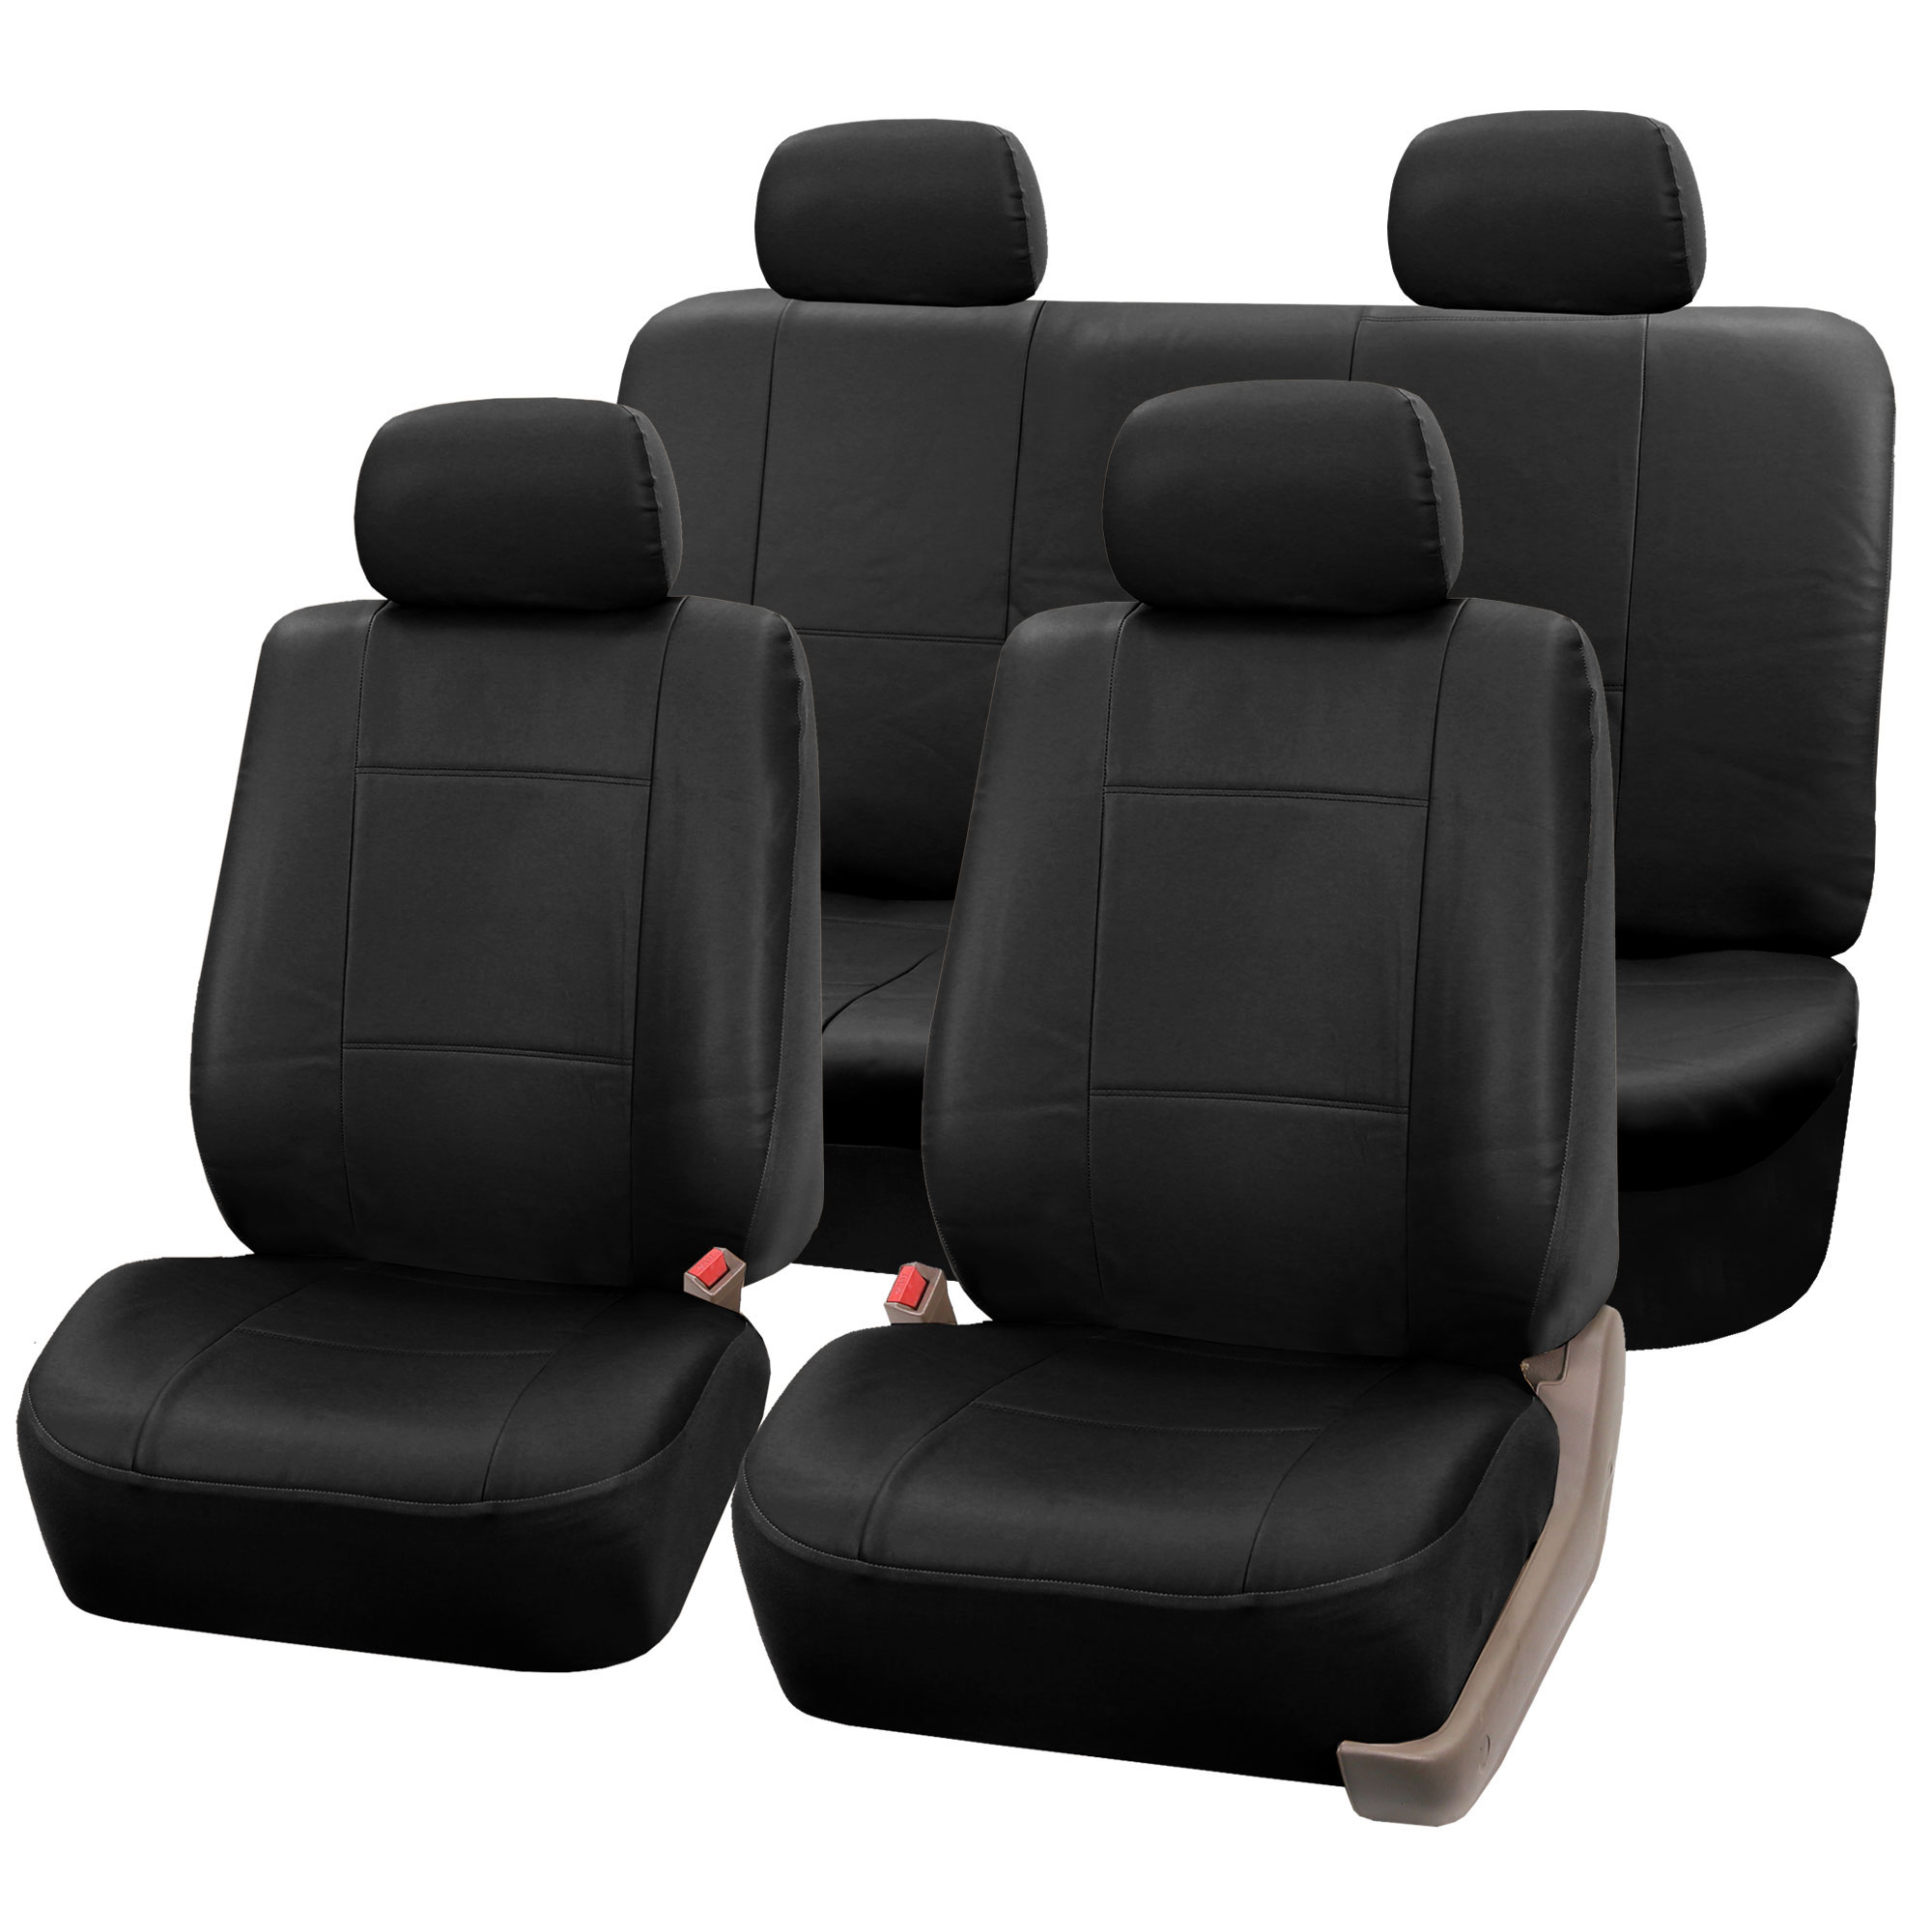 Faux Leather Full Sets Car Seat Cover For SUV VAN Auto